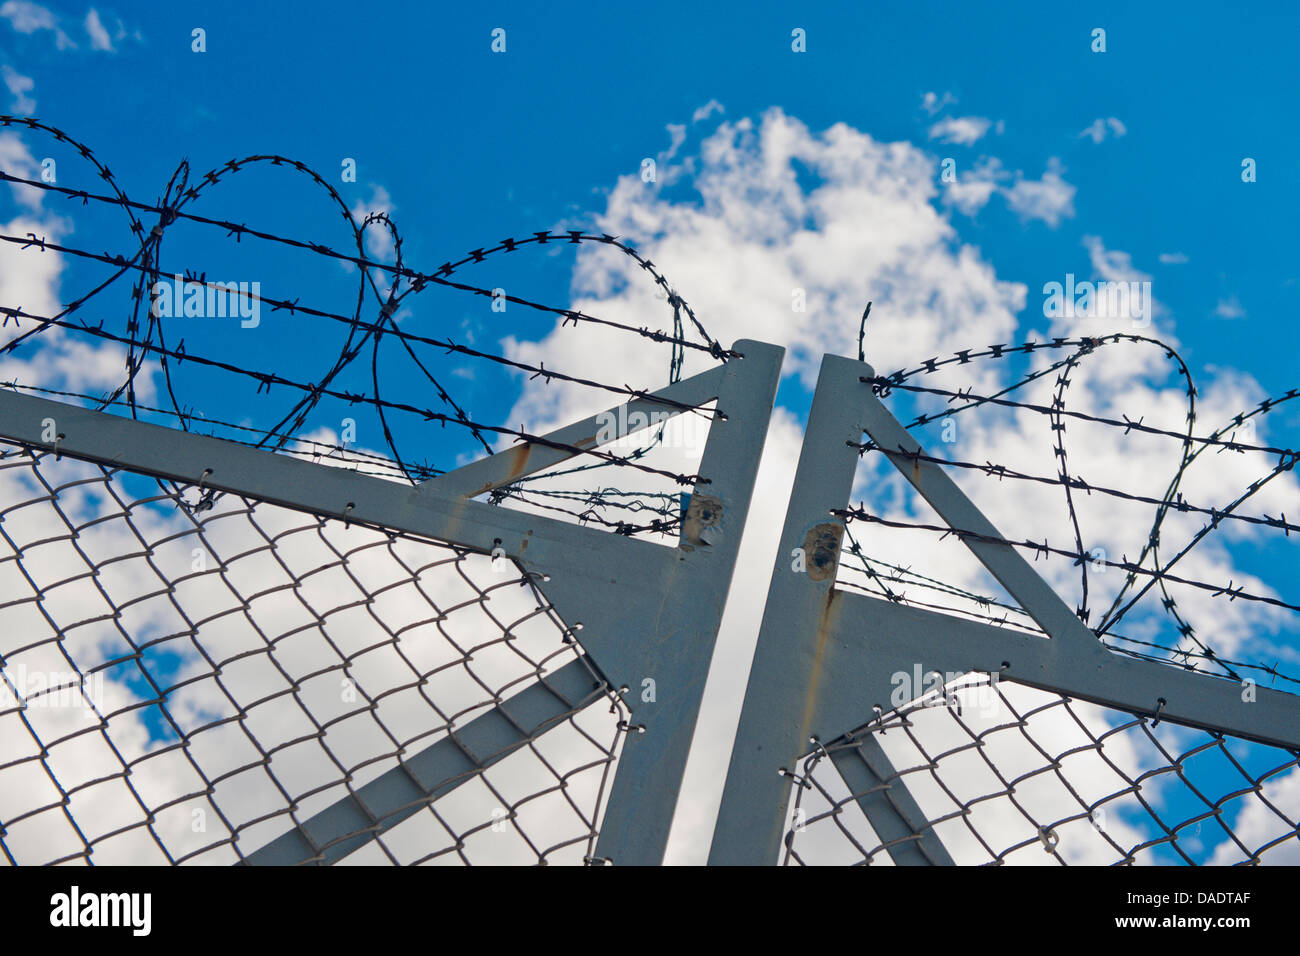 barbed wire fence and cloudy sky, Germany, Berlin - Stock Image